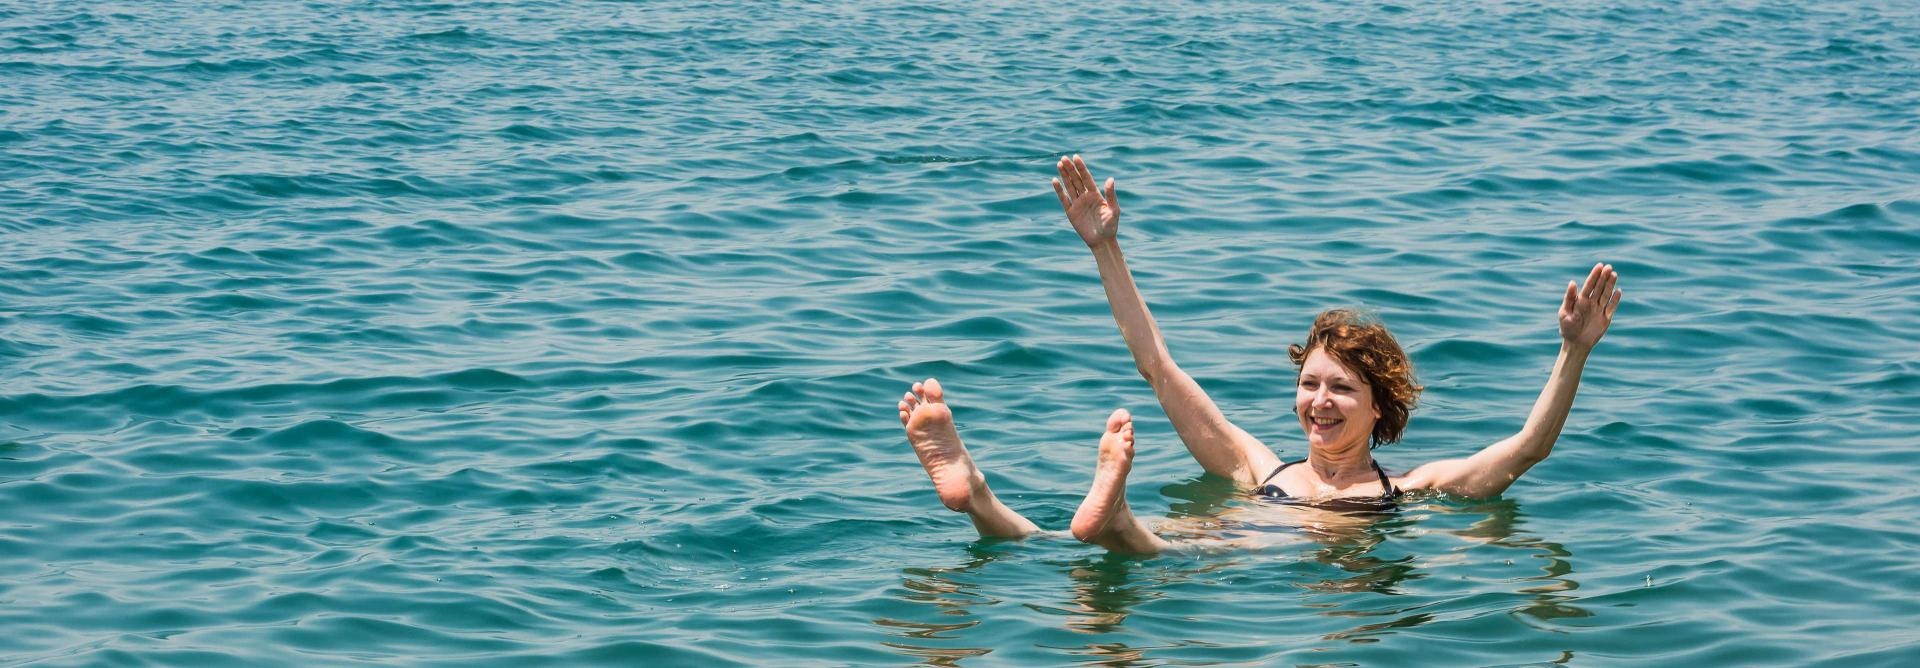 Jordan Dead Sea swimming